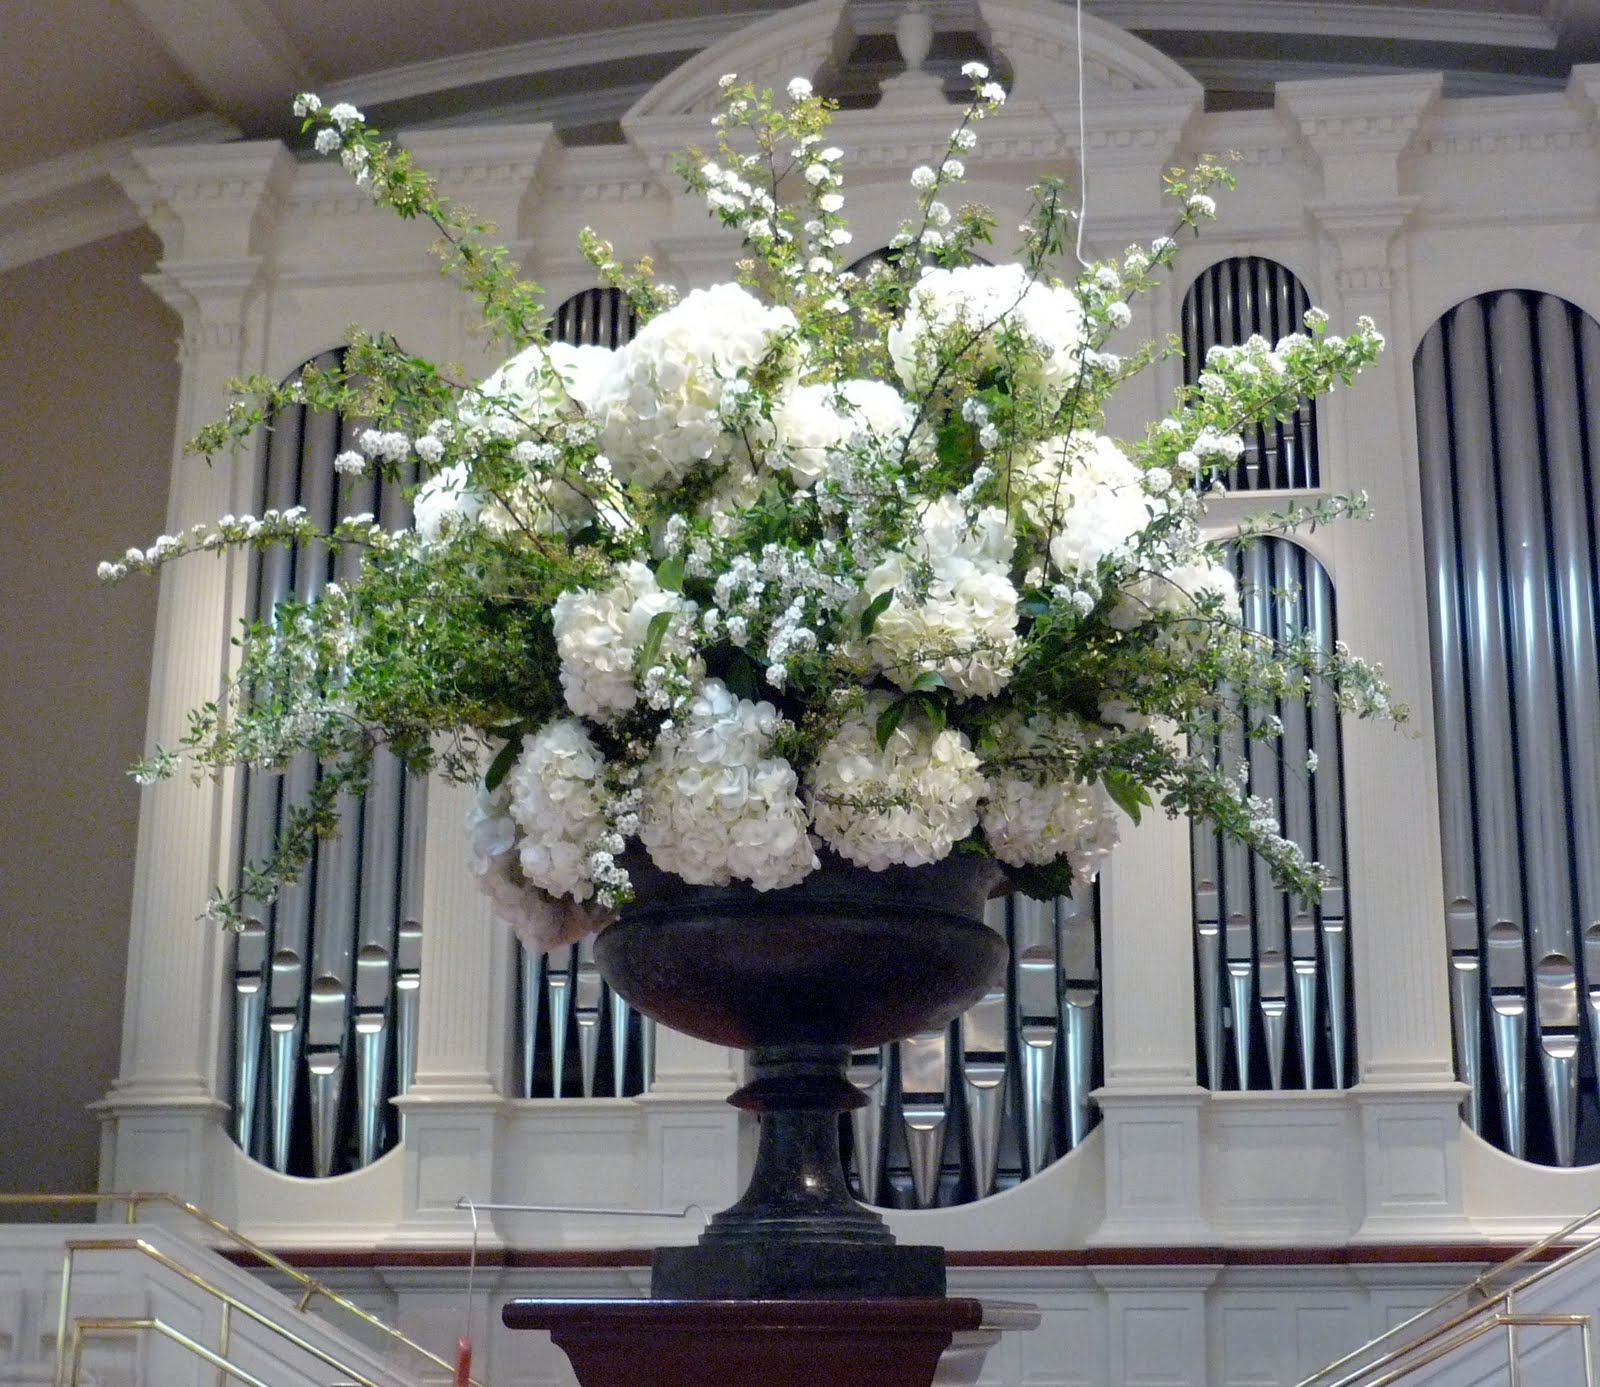 Church Altar Wedding Flower Arrangements: Ceremony Flower, Altar Arrangement, Wedding Altars, Altar